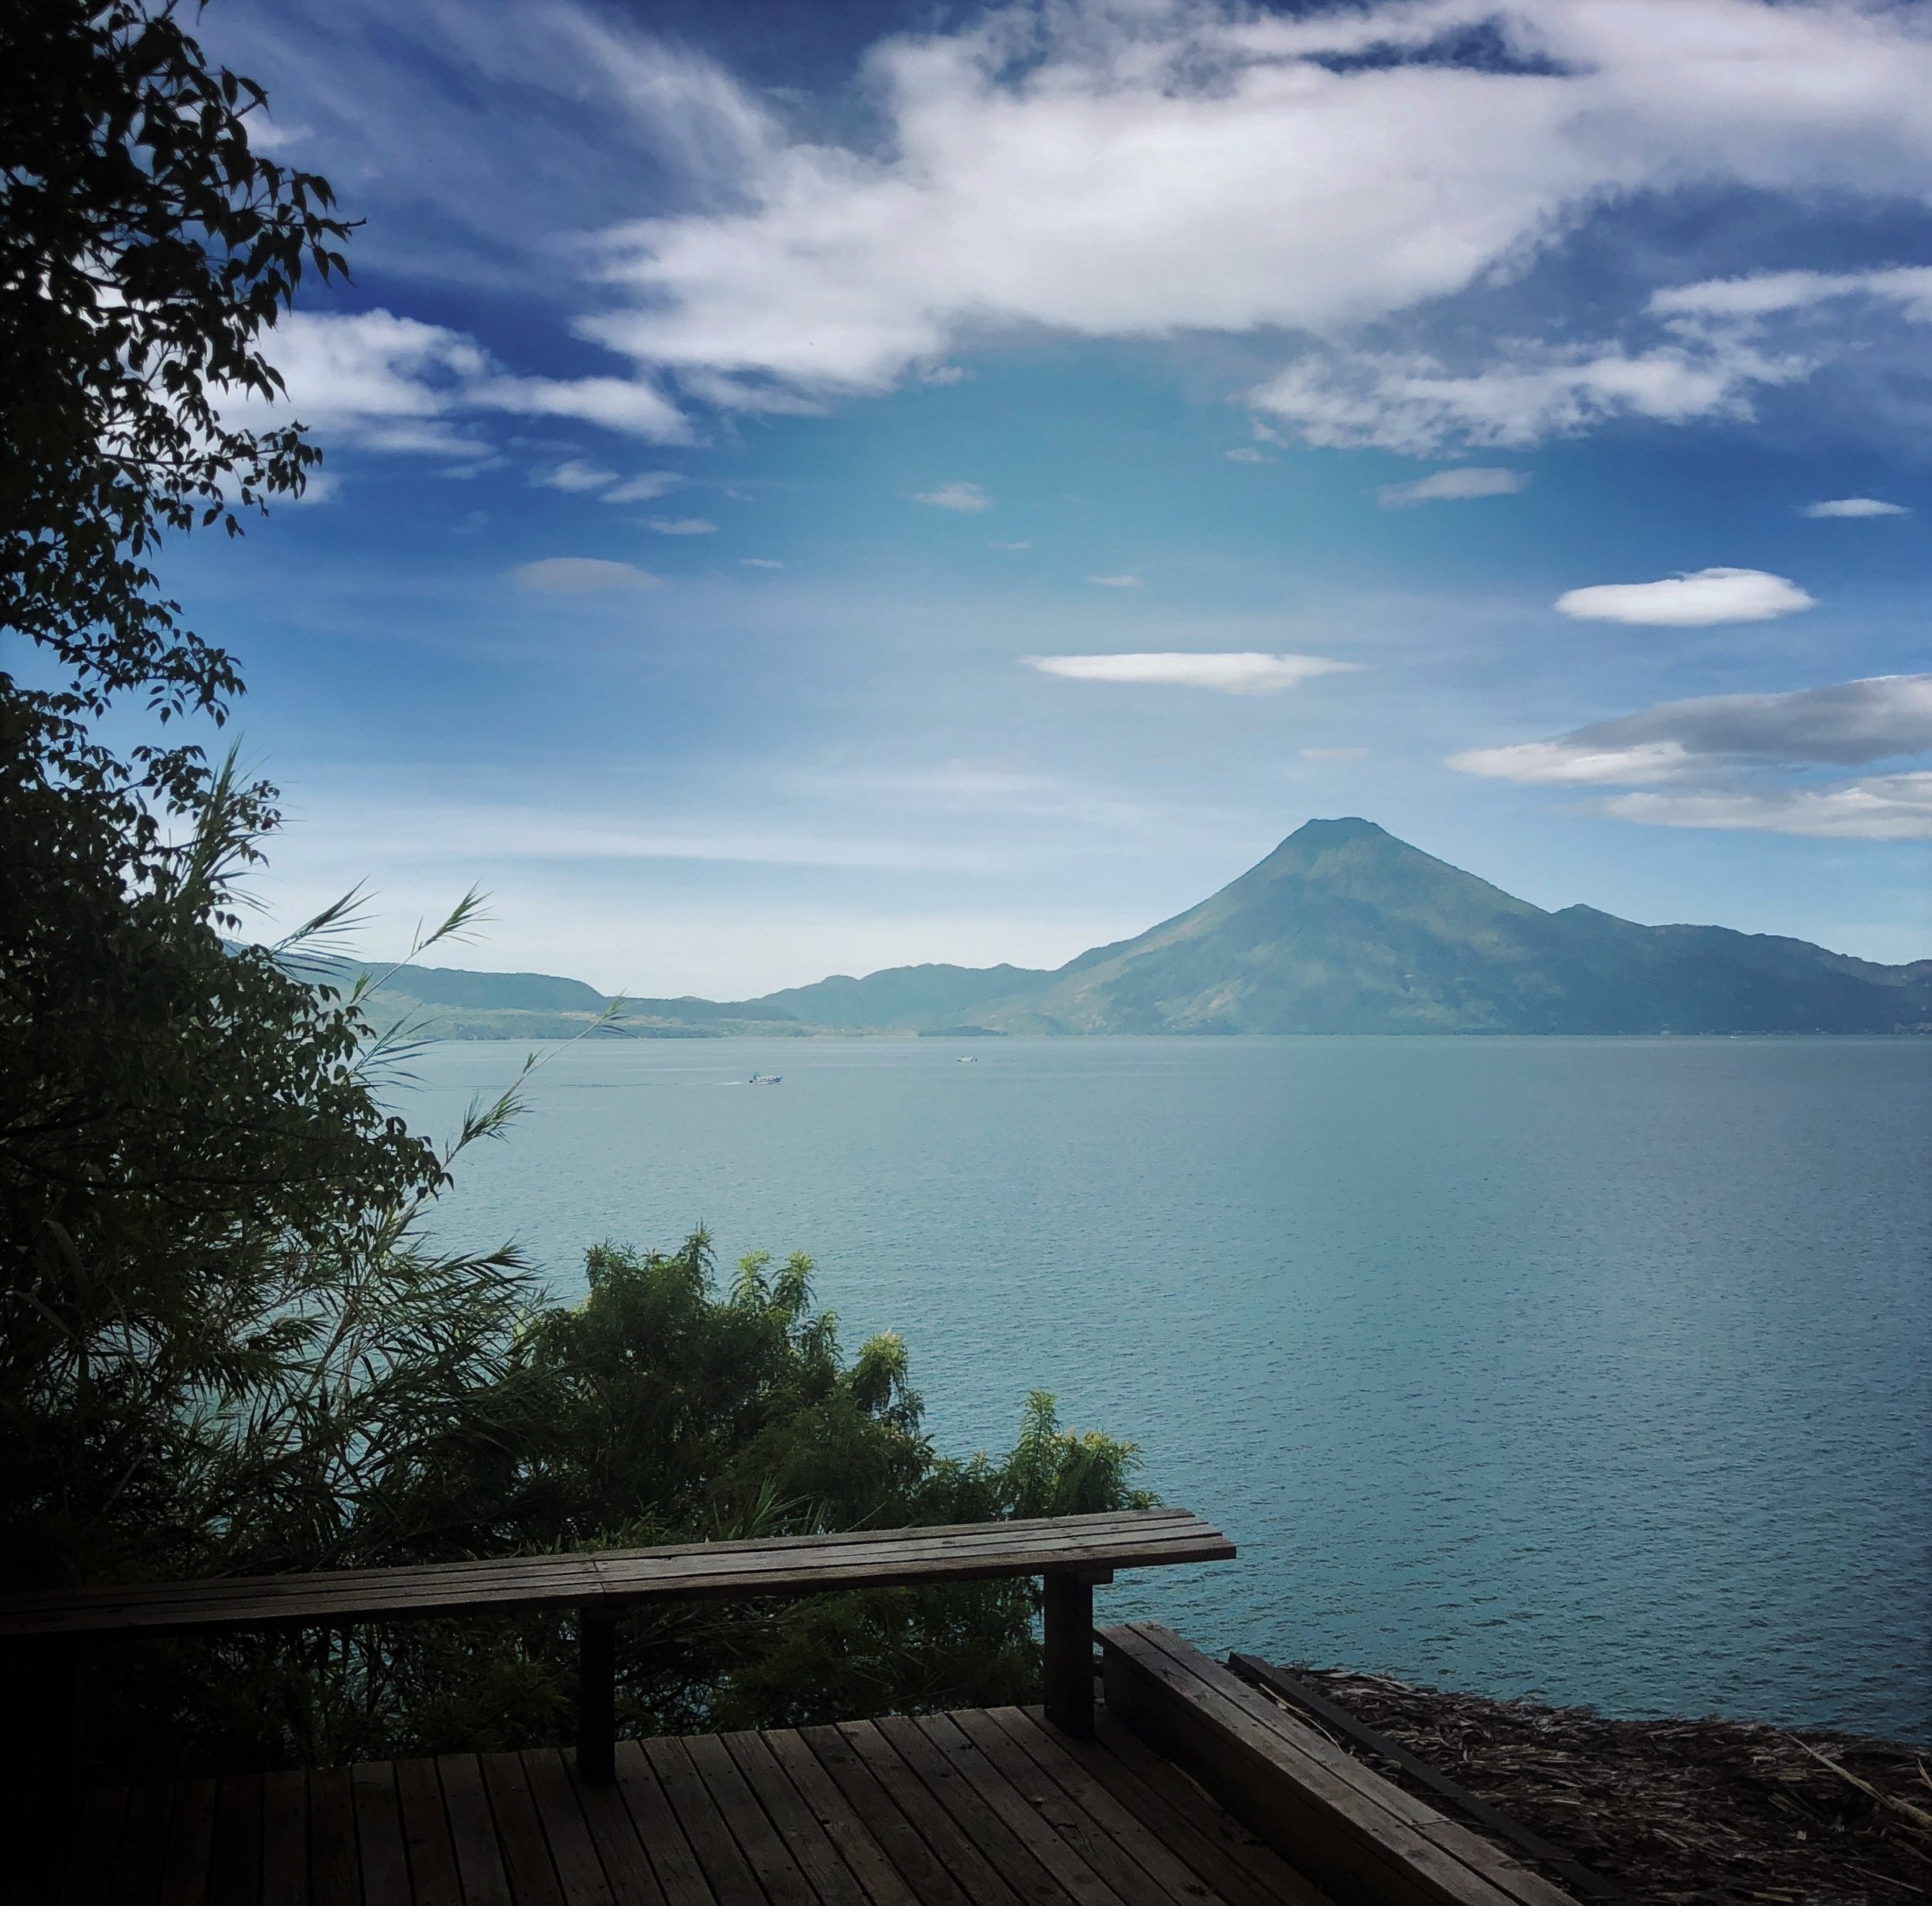 ART & PHOTOGRAPHY RETREATS - ANTIGUA + LAKE ATITLAN GuaTEMALA